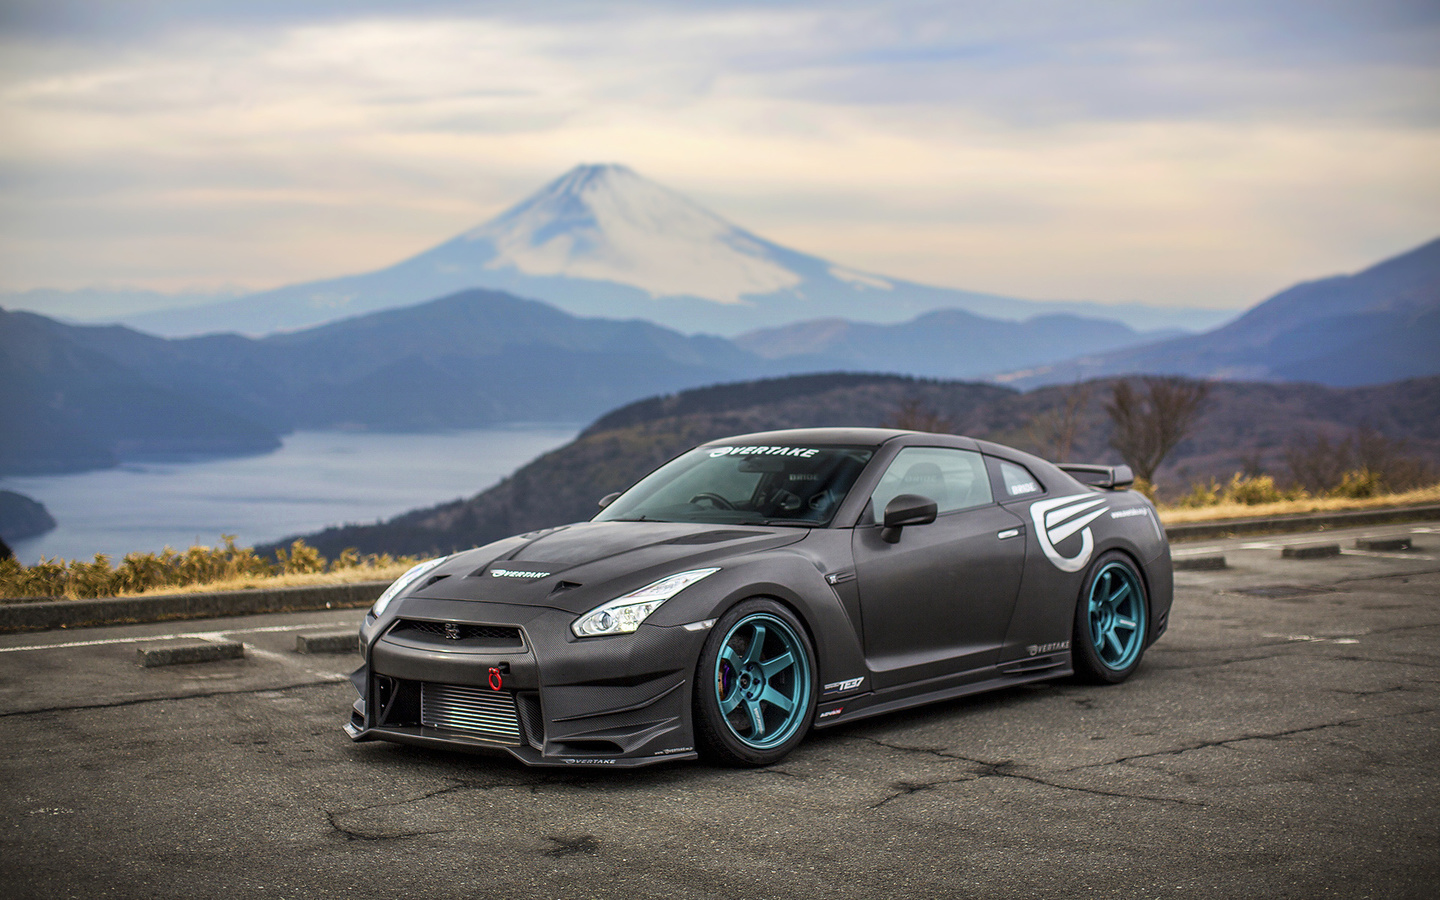 тюнинг, car, carbon, nissan gt-r, tuning